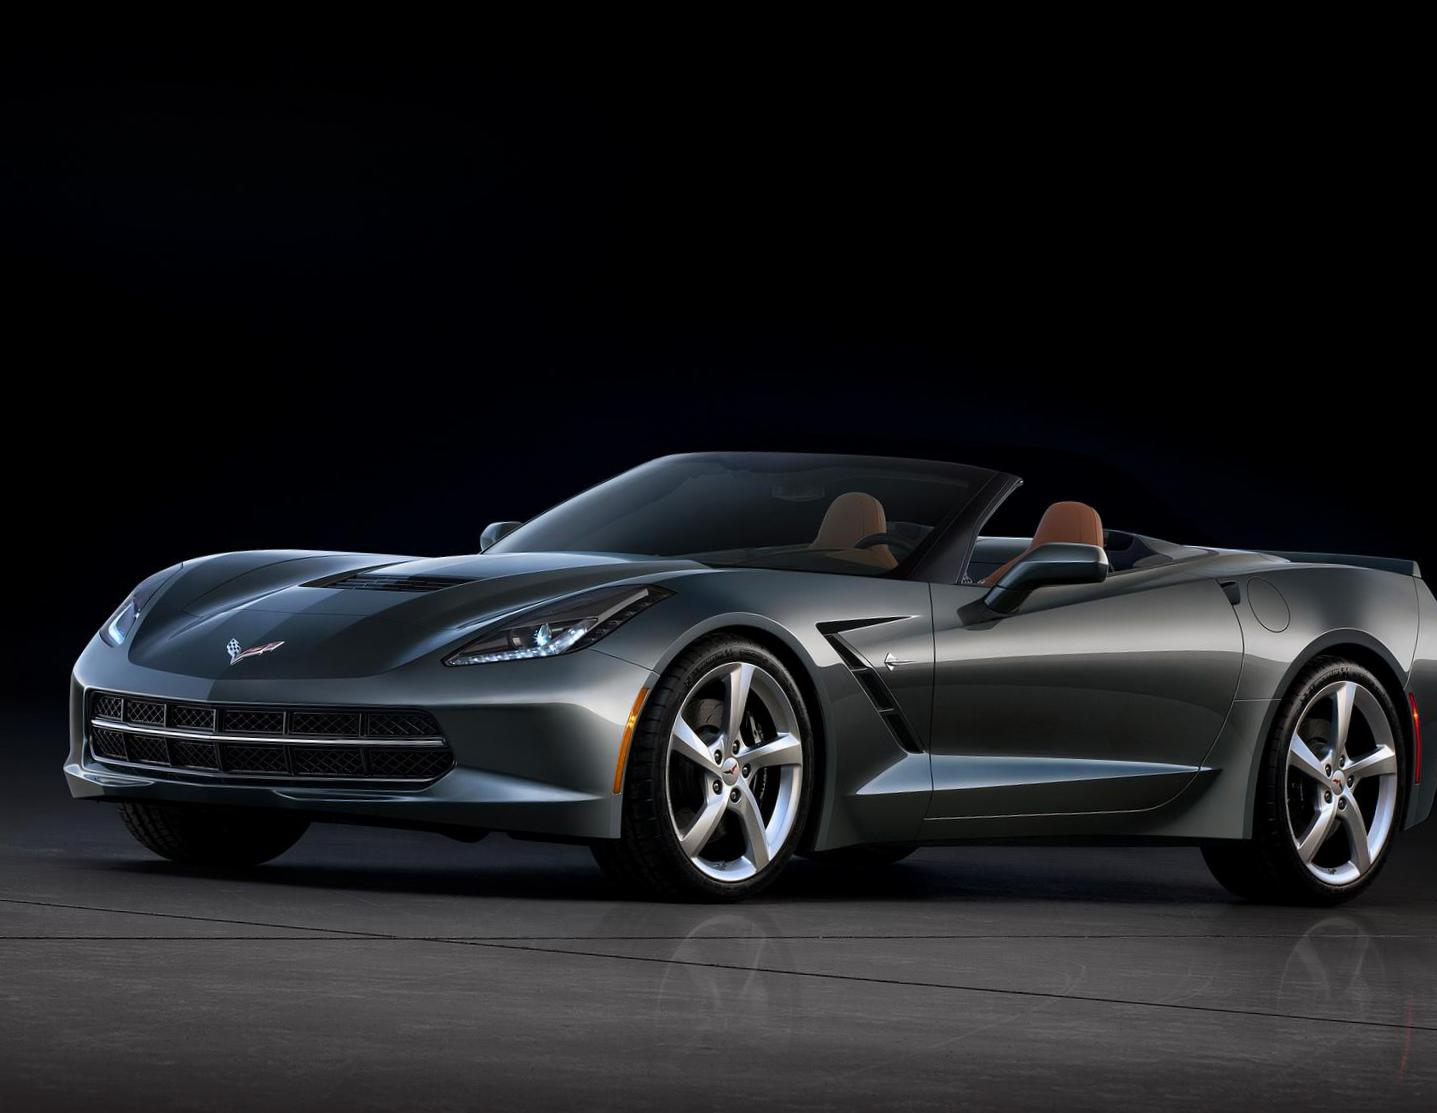 Corvette Stingray Convertible Chevrolet model 2010